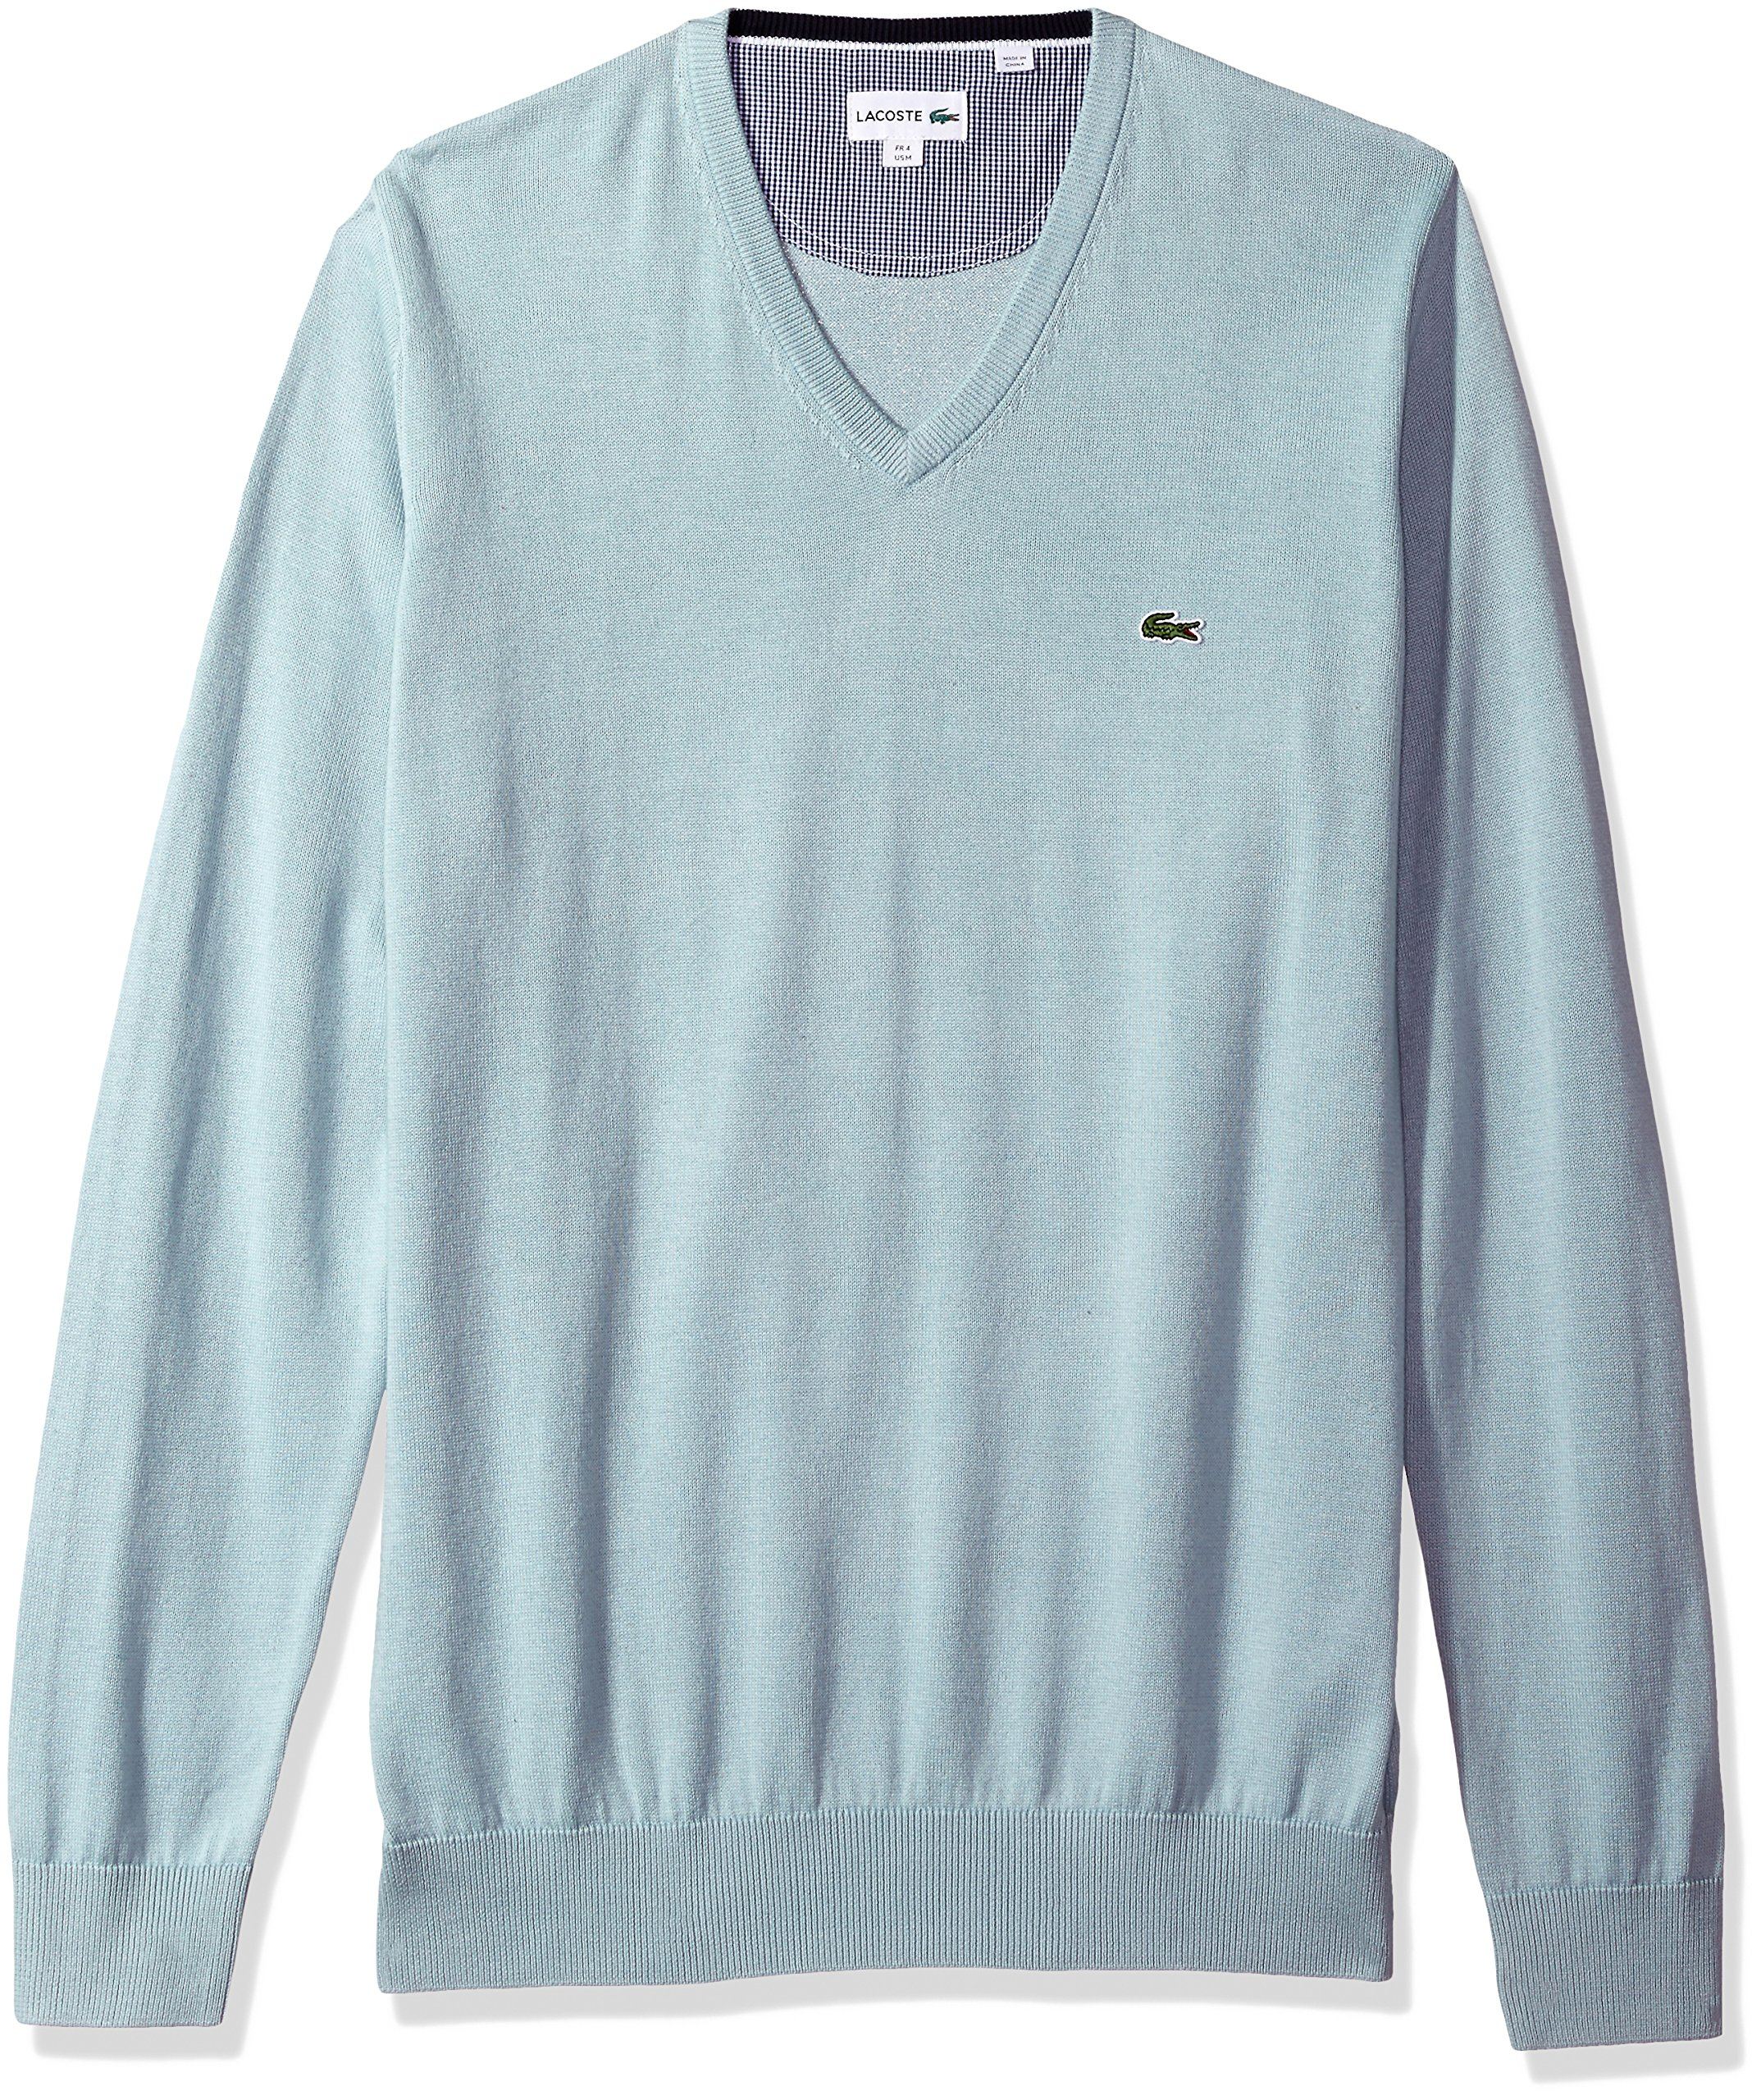 Lacoste Men's V Neck Cotton Jersey Sweater with Green Croc, Shower, 6 by Lacoste (Image #1)